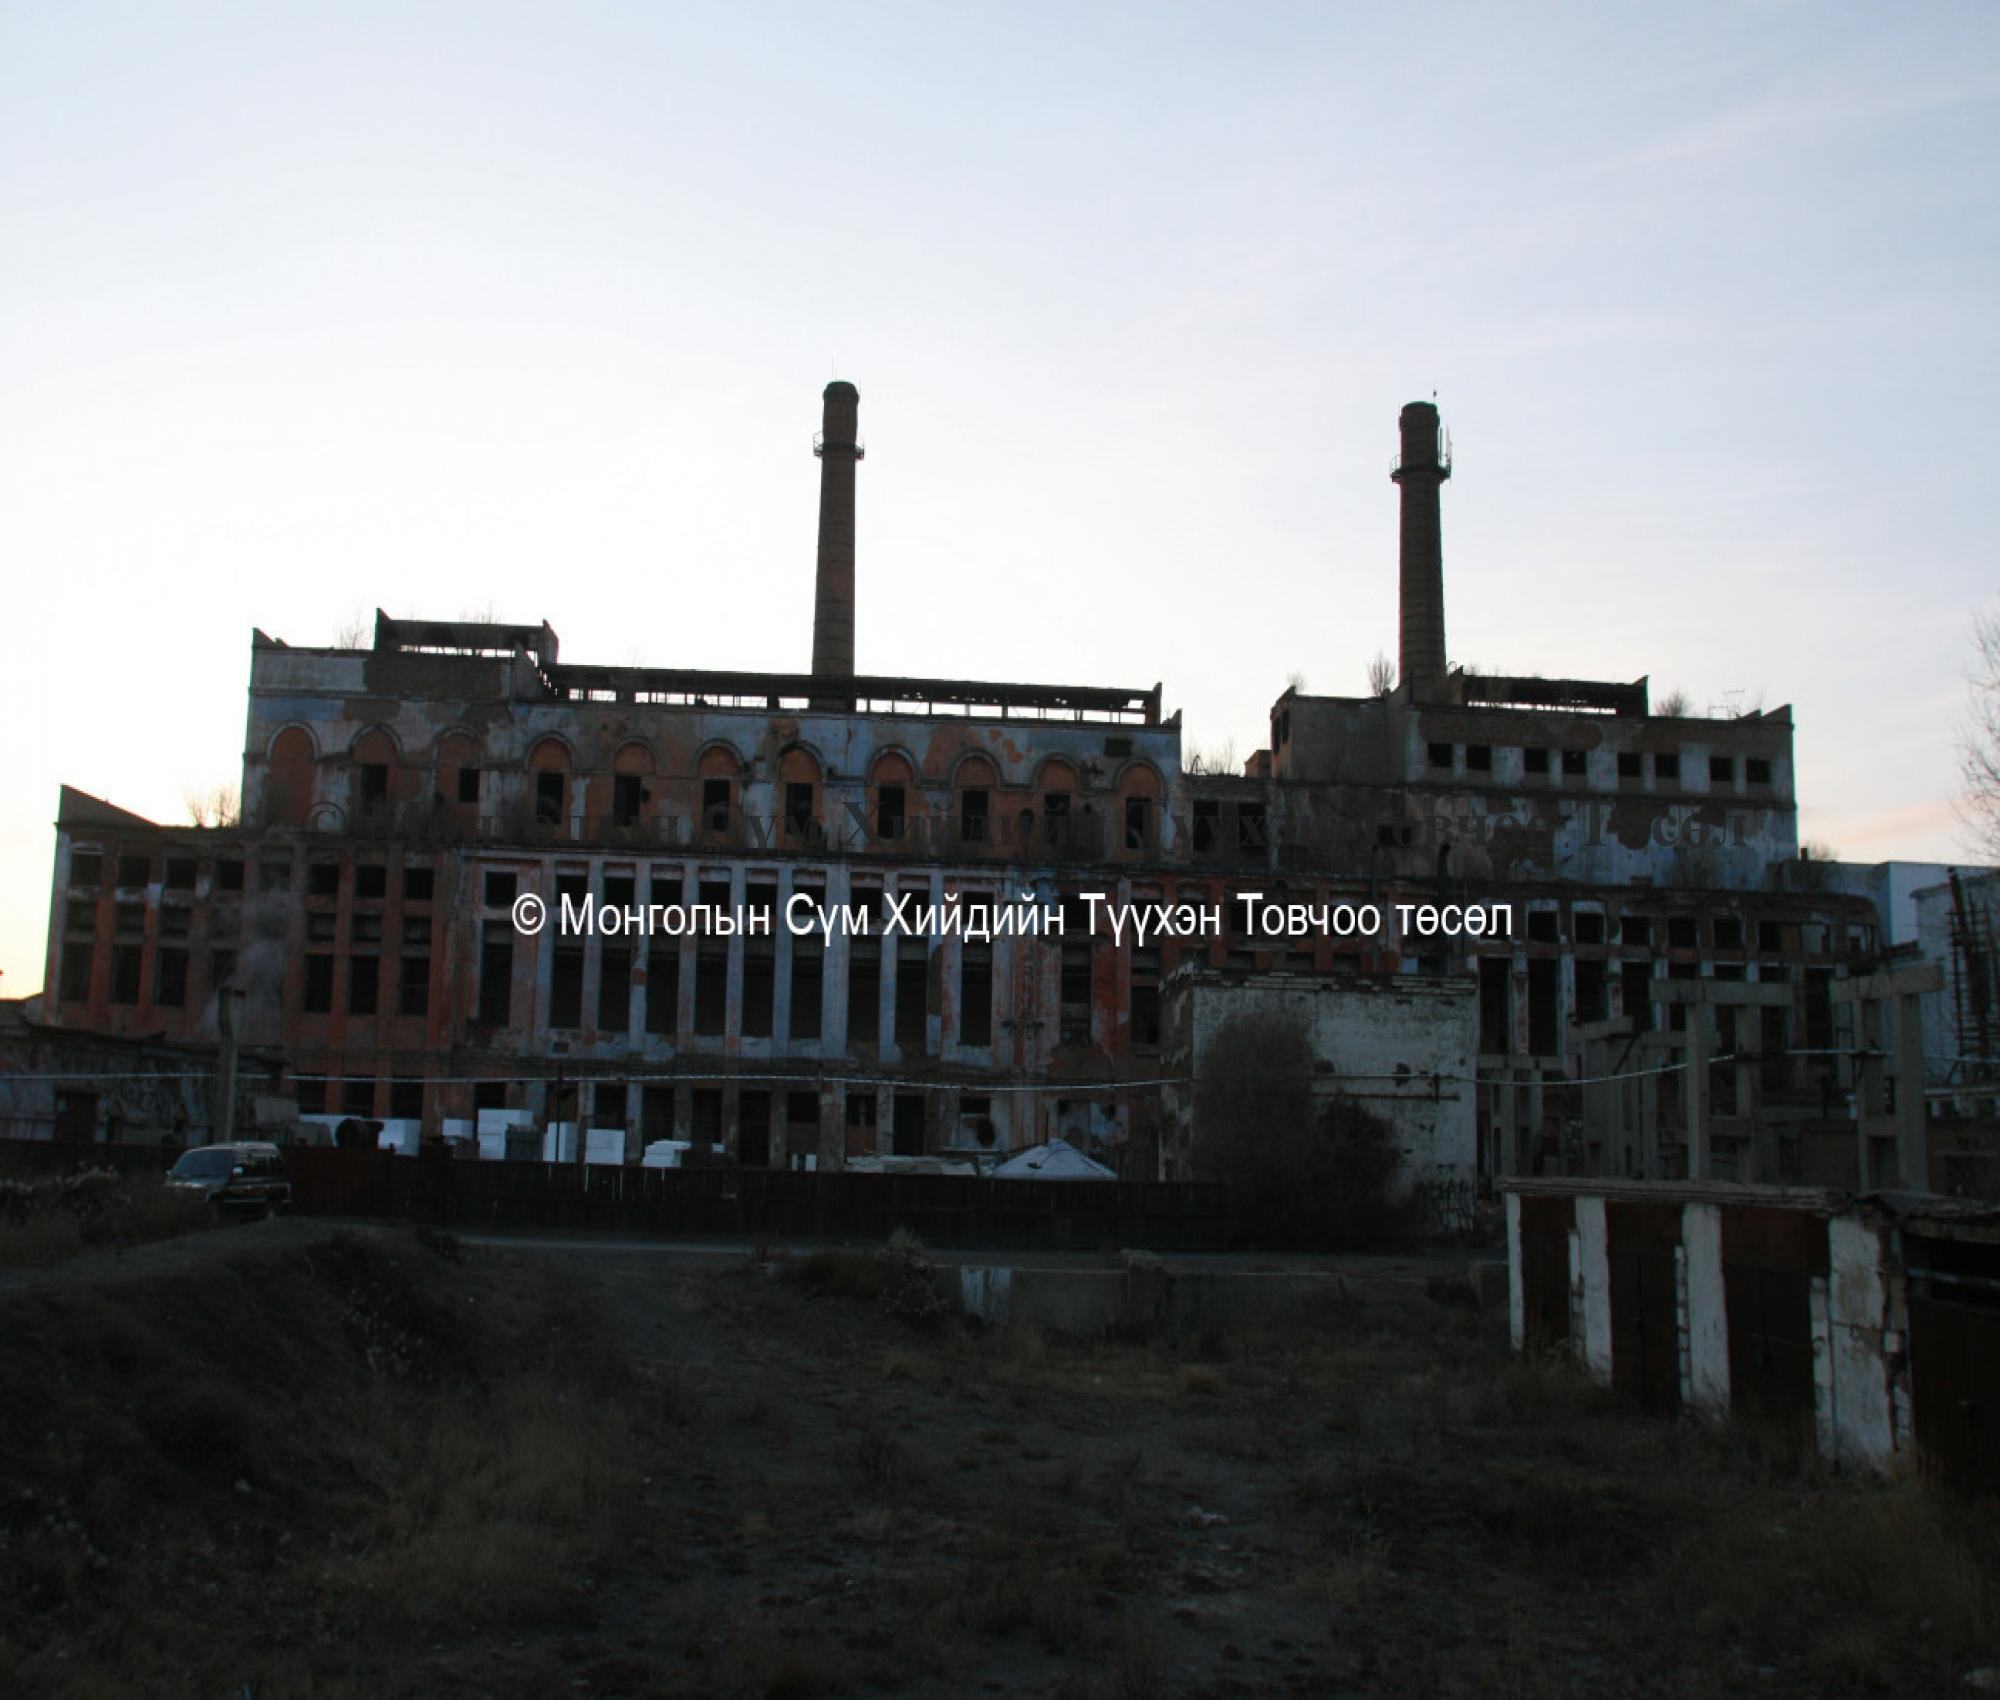 First or Central Electricity Plant 2007